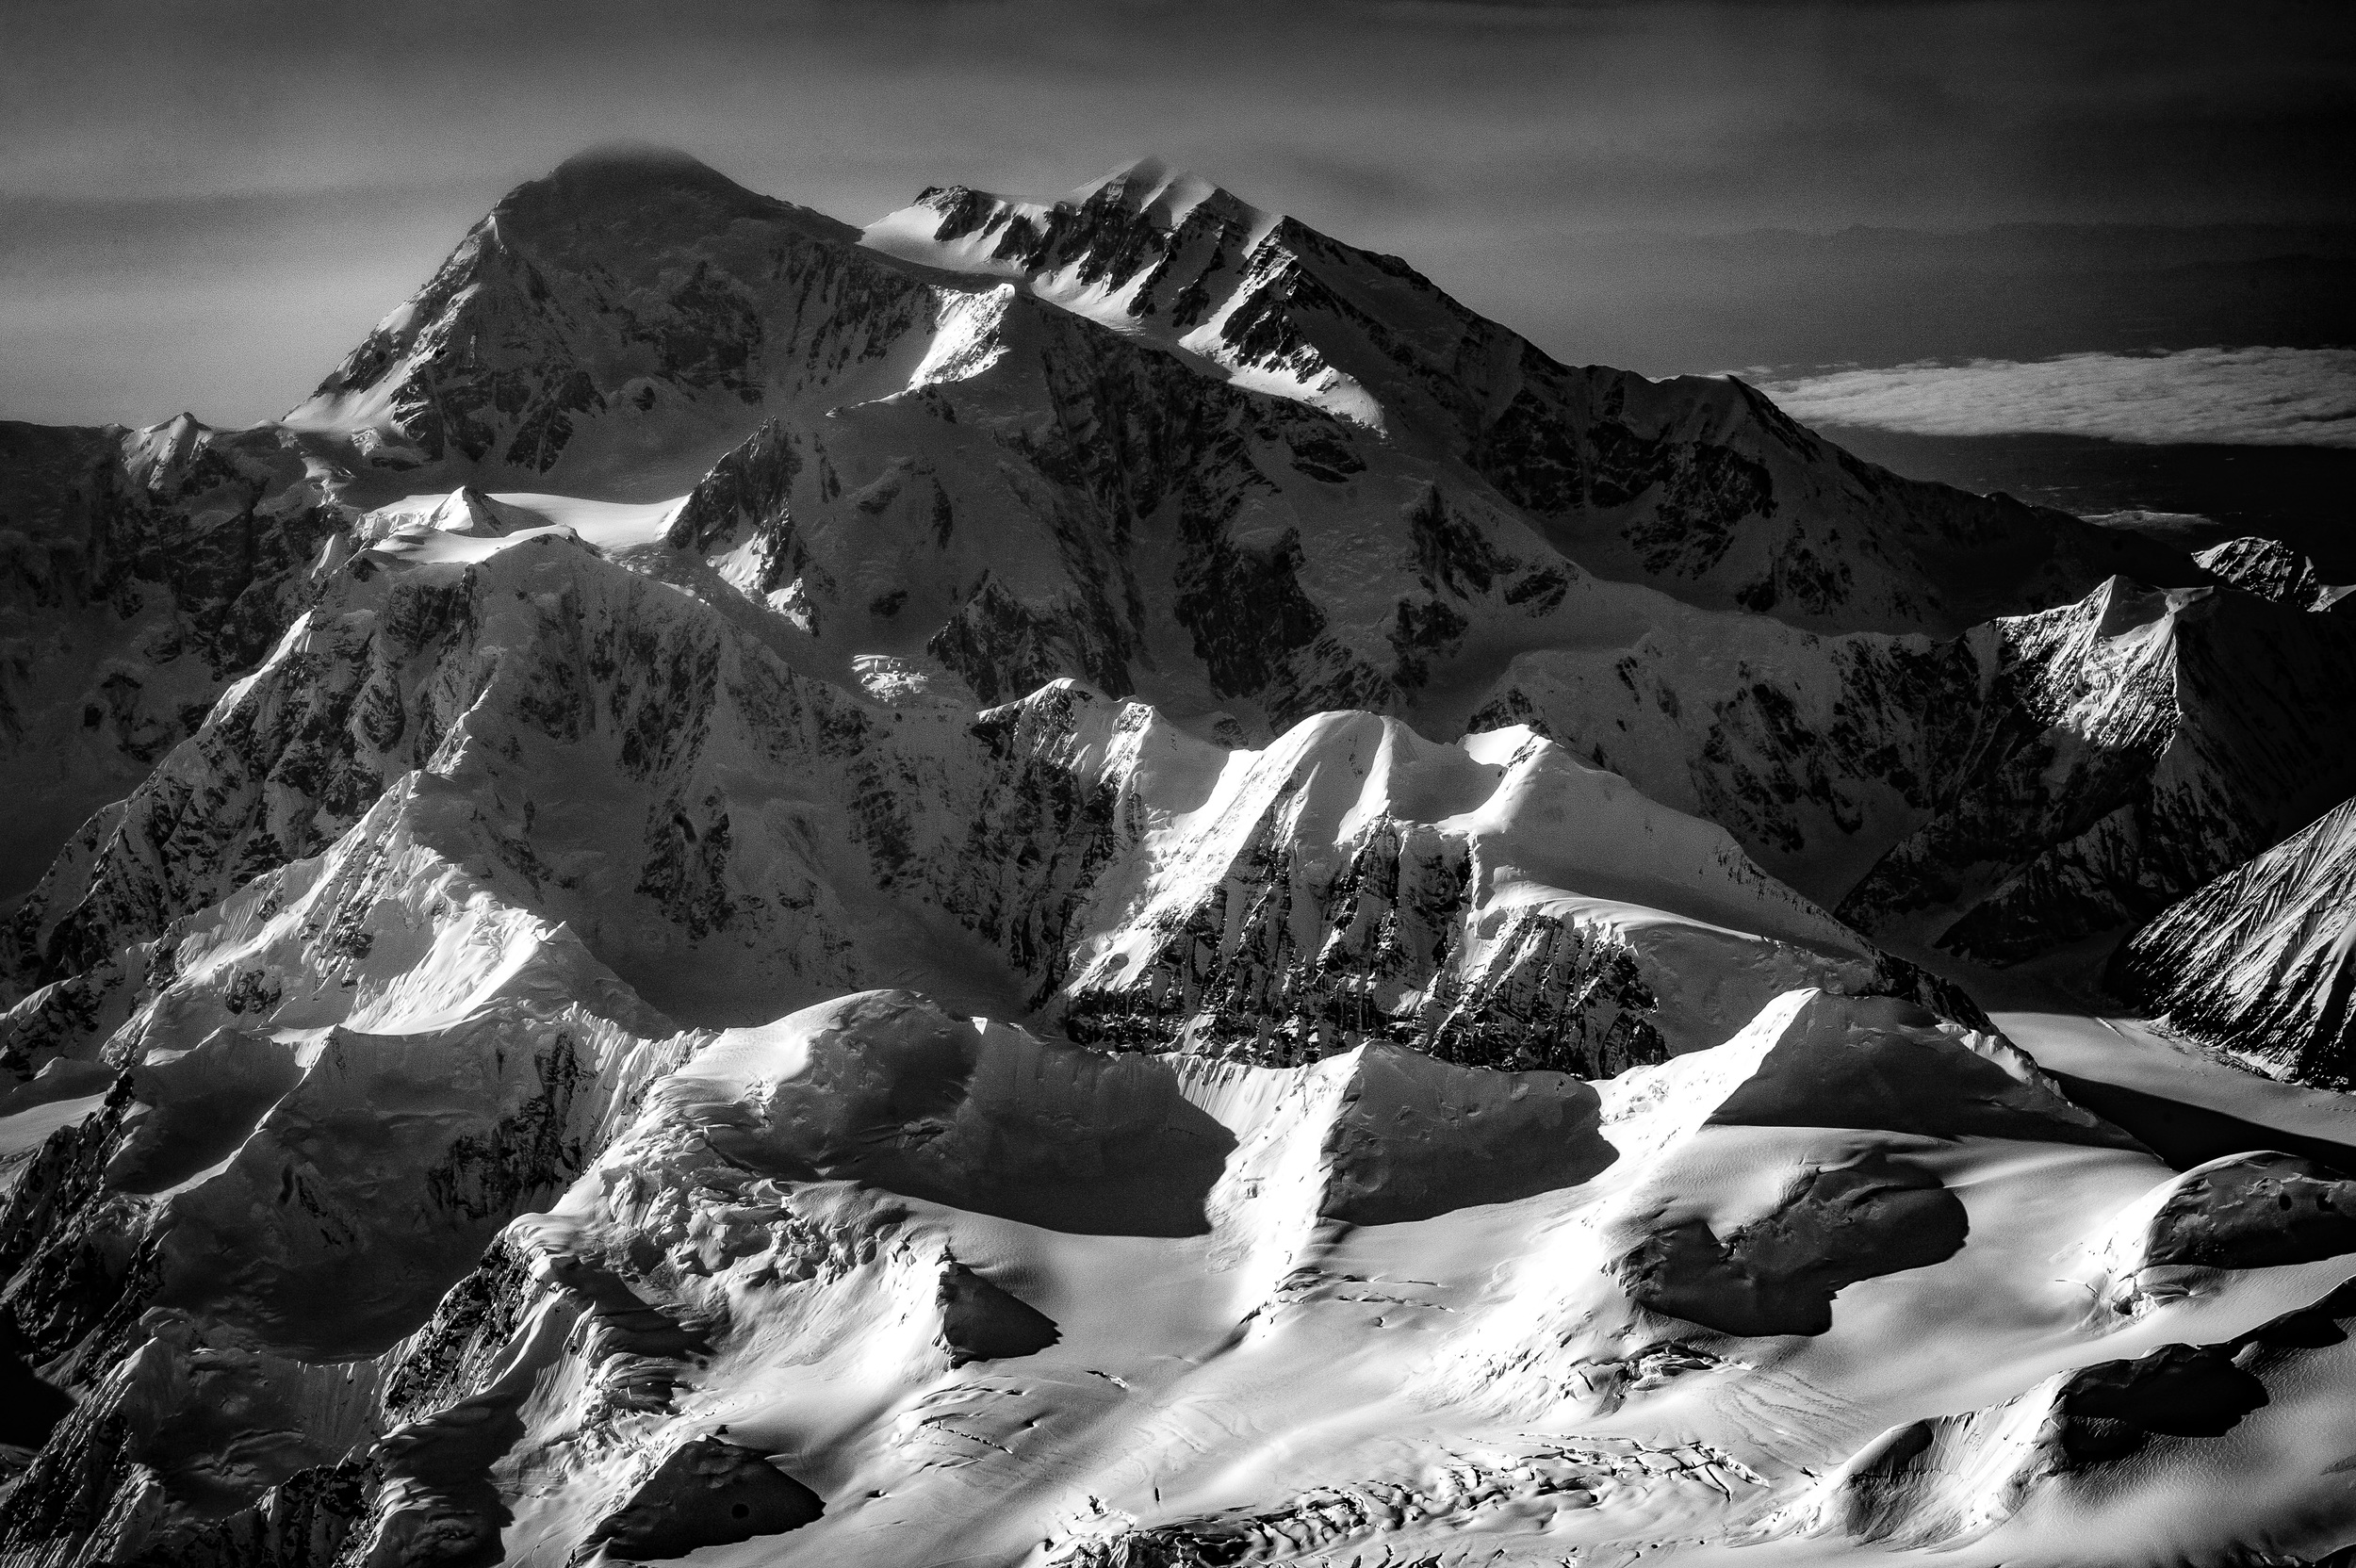 The final image of Mt. Denali edited in Adobe Lightroom CC and converted to black and white.